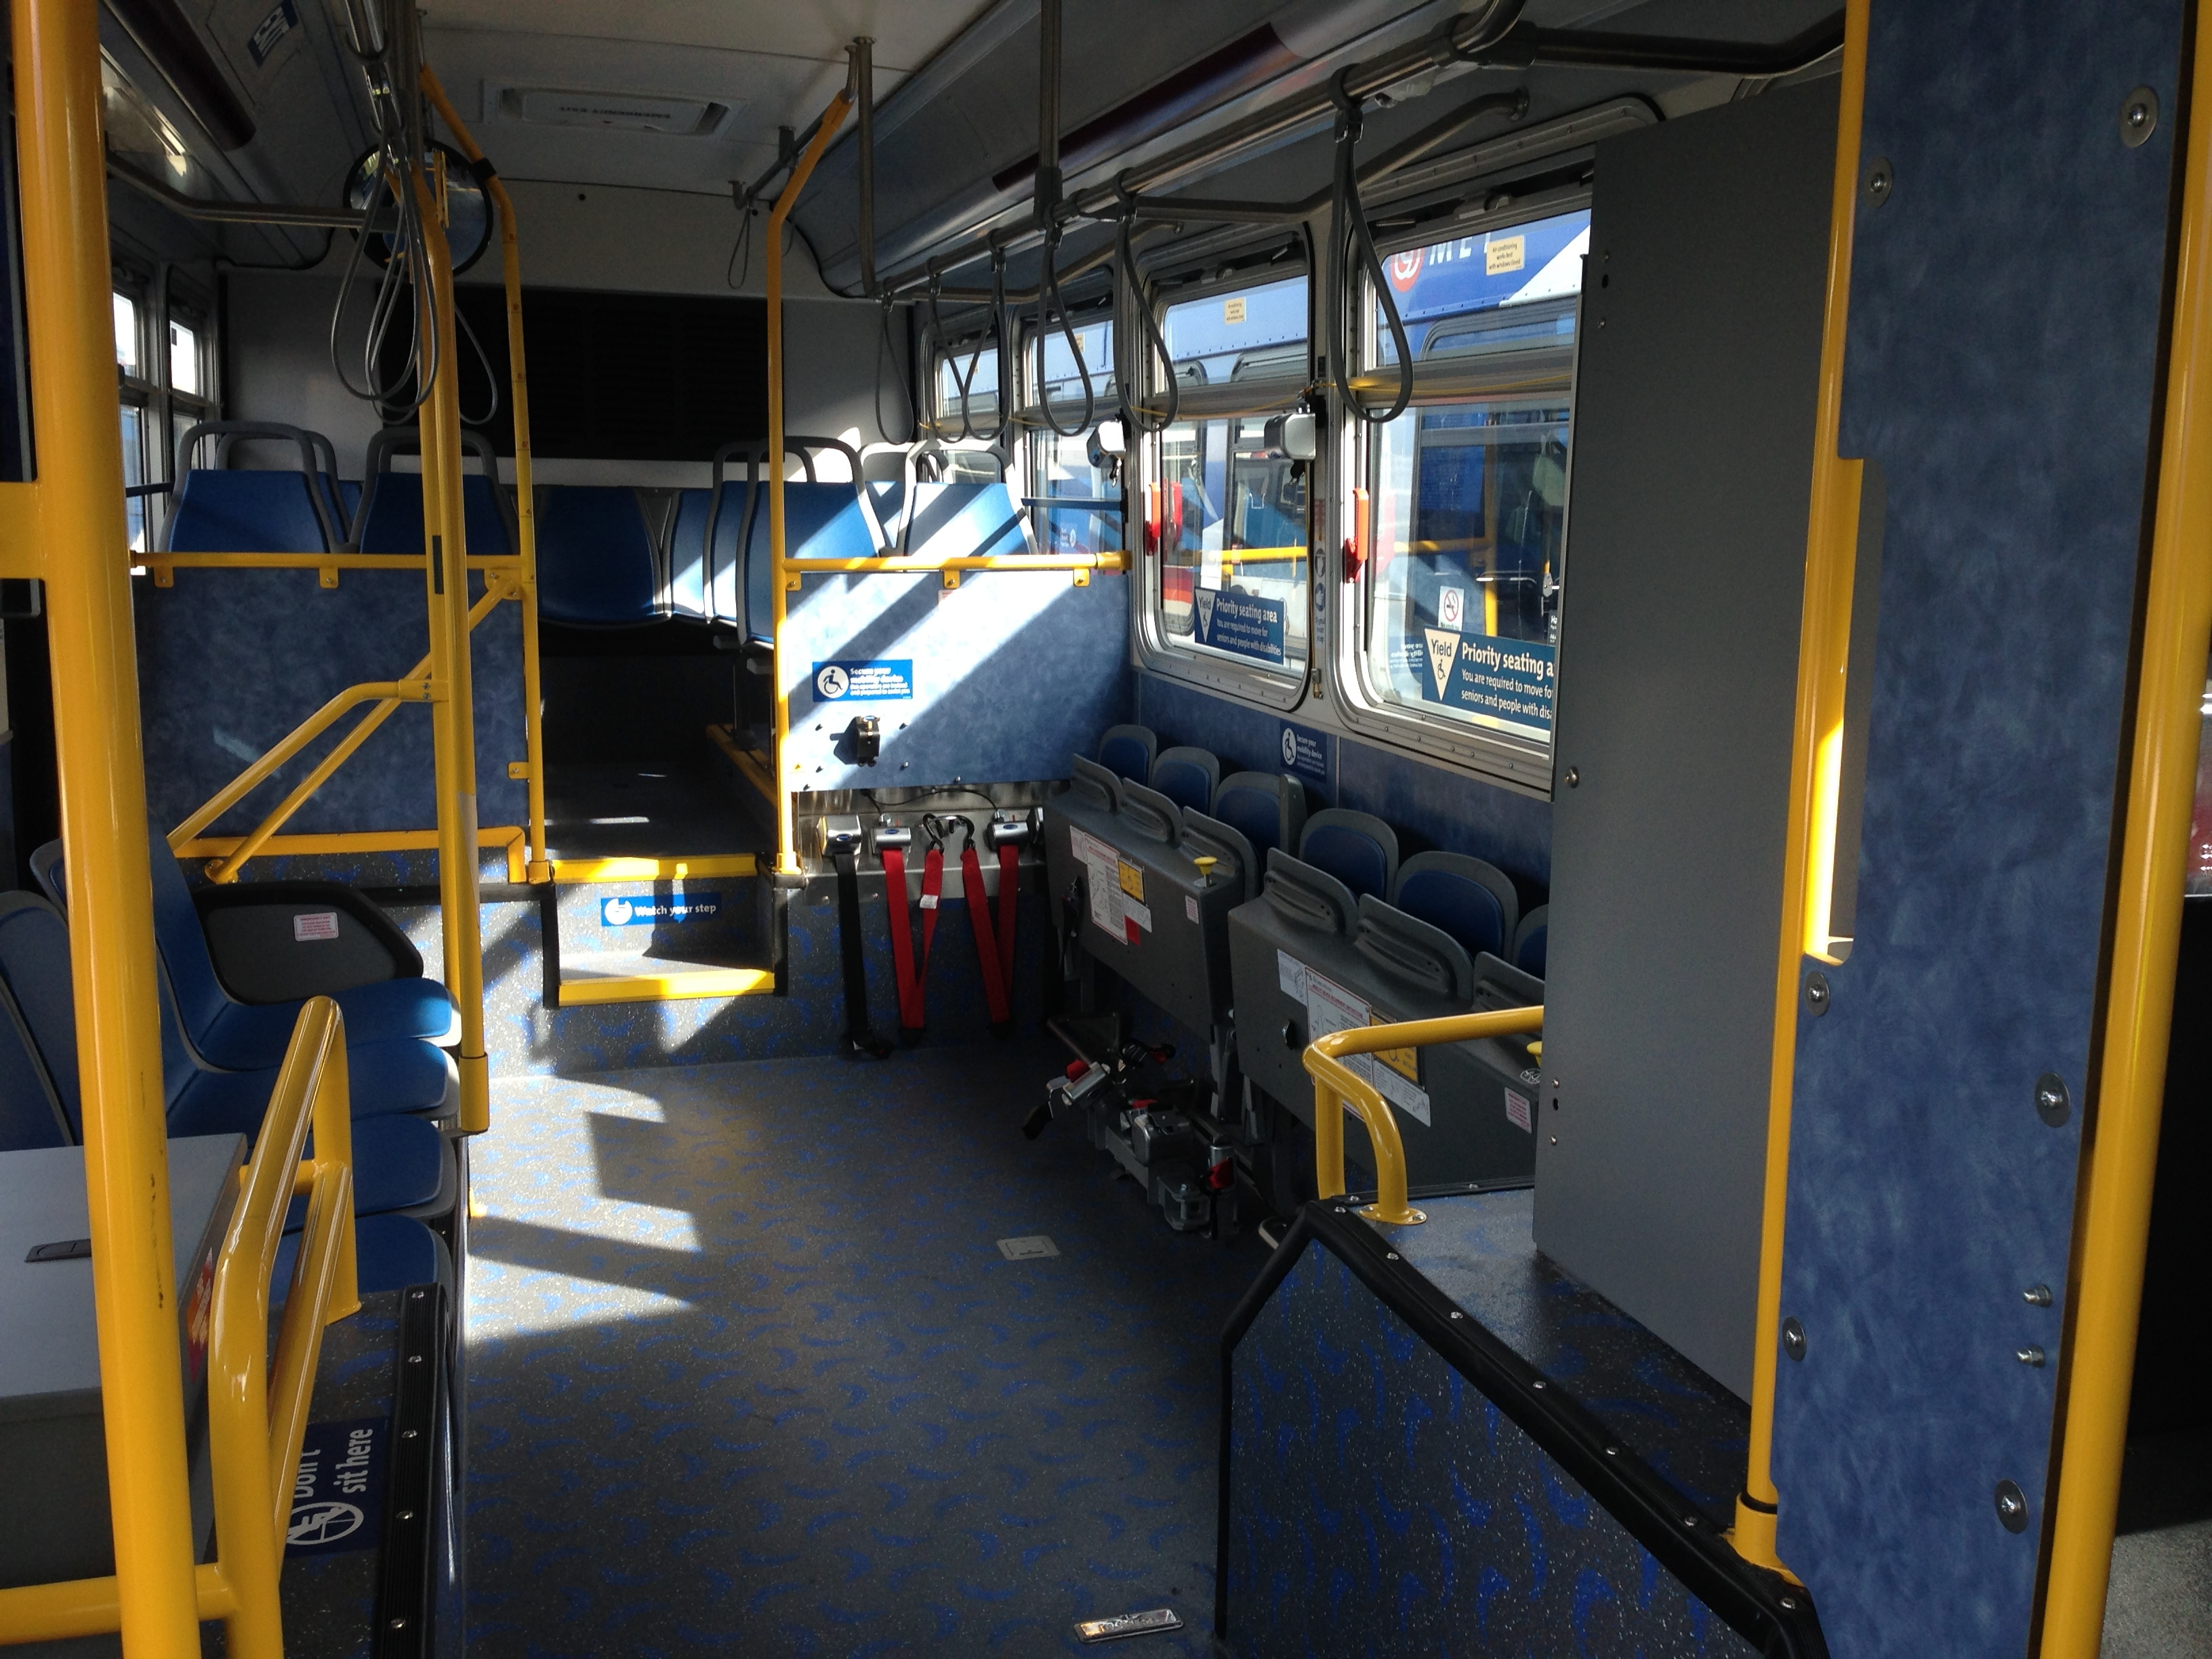 New 30 Foot Trimet Buses Are Now In Service In Areas With